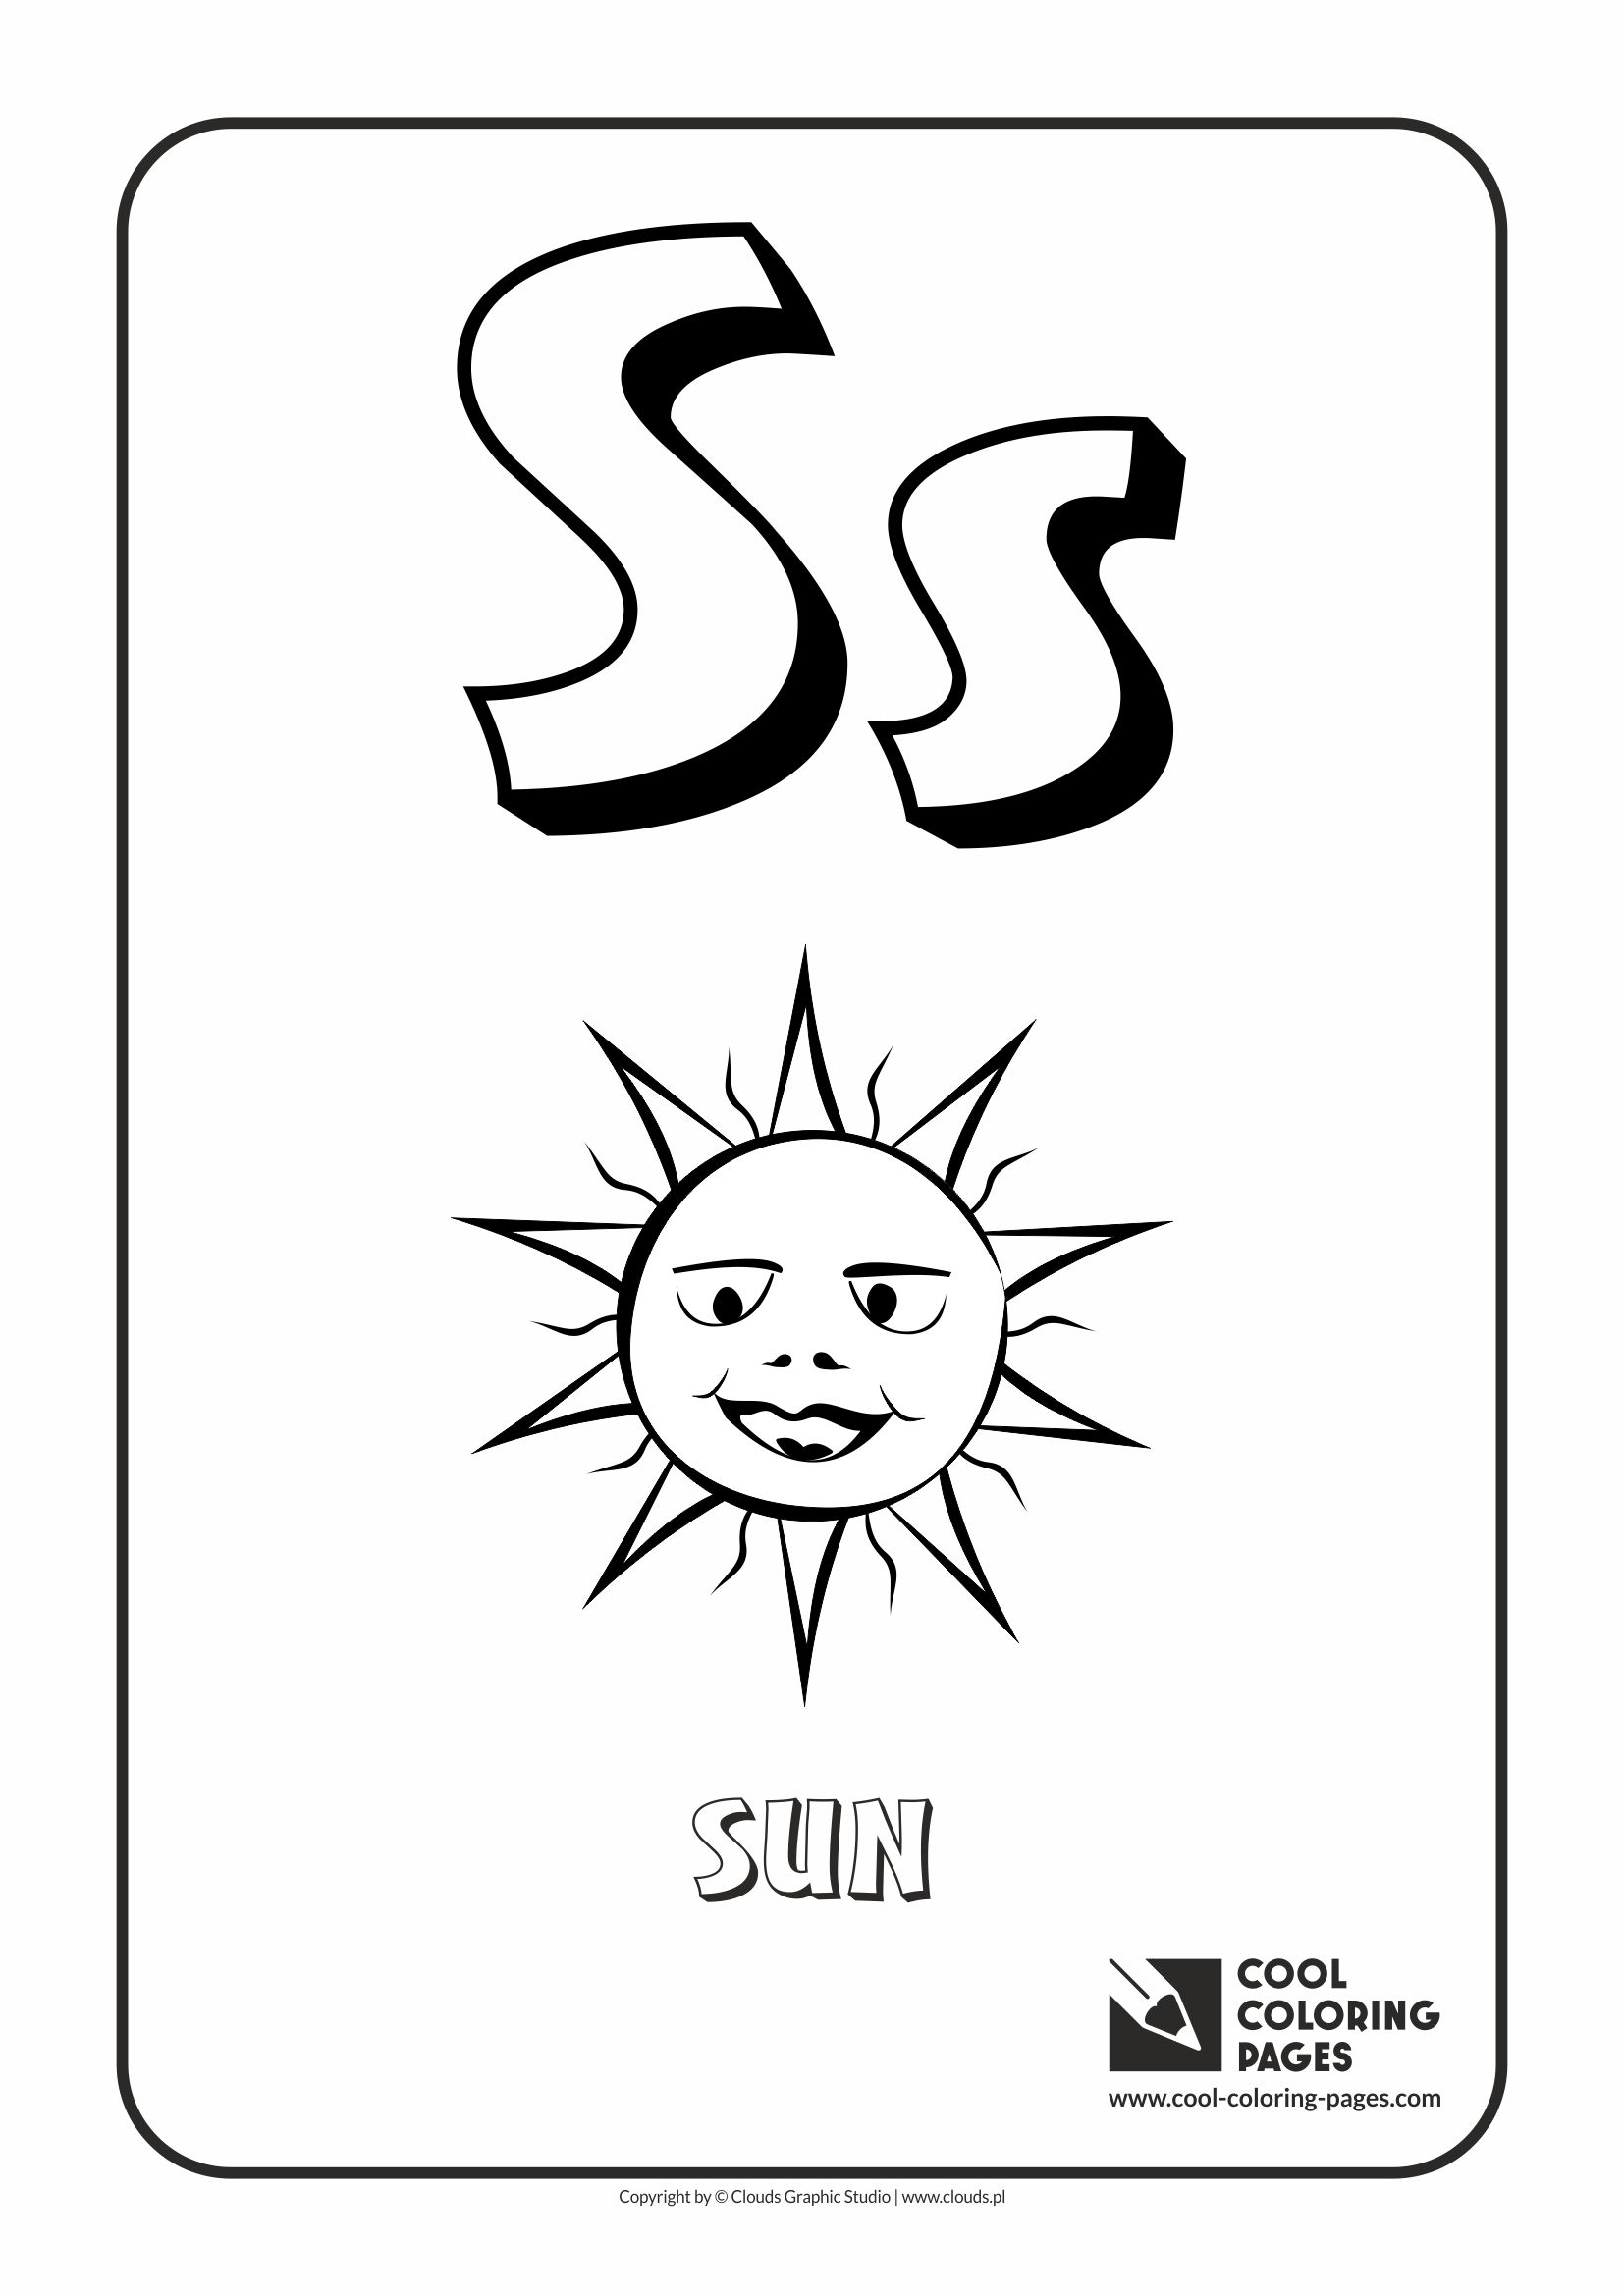 cool coloring pages alphabet letter s coloring page with letter s - S Coloring Pictures